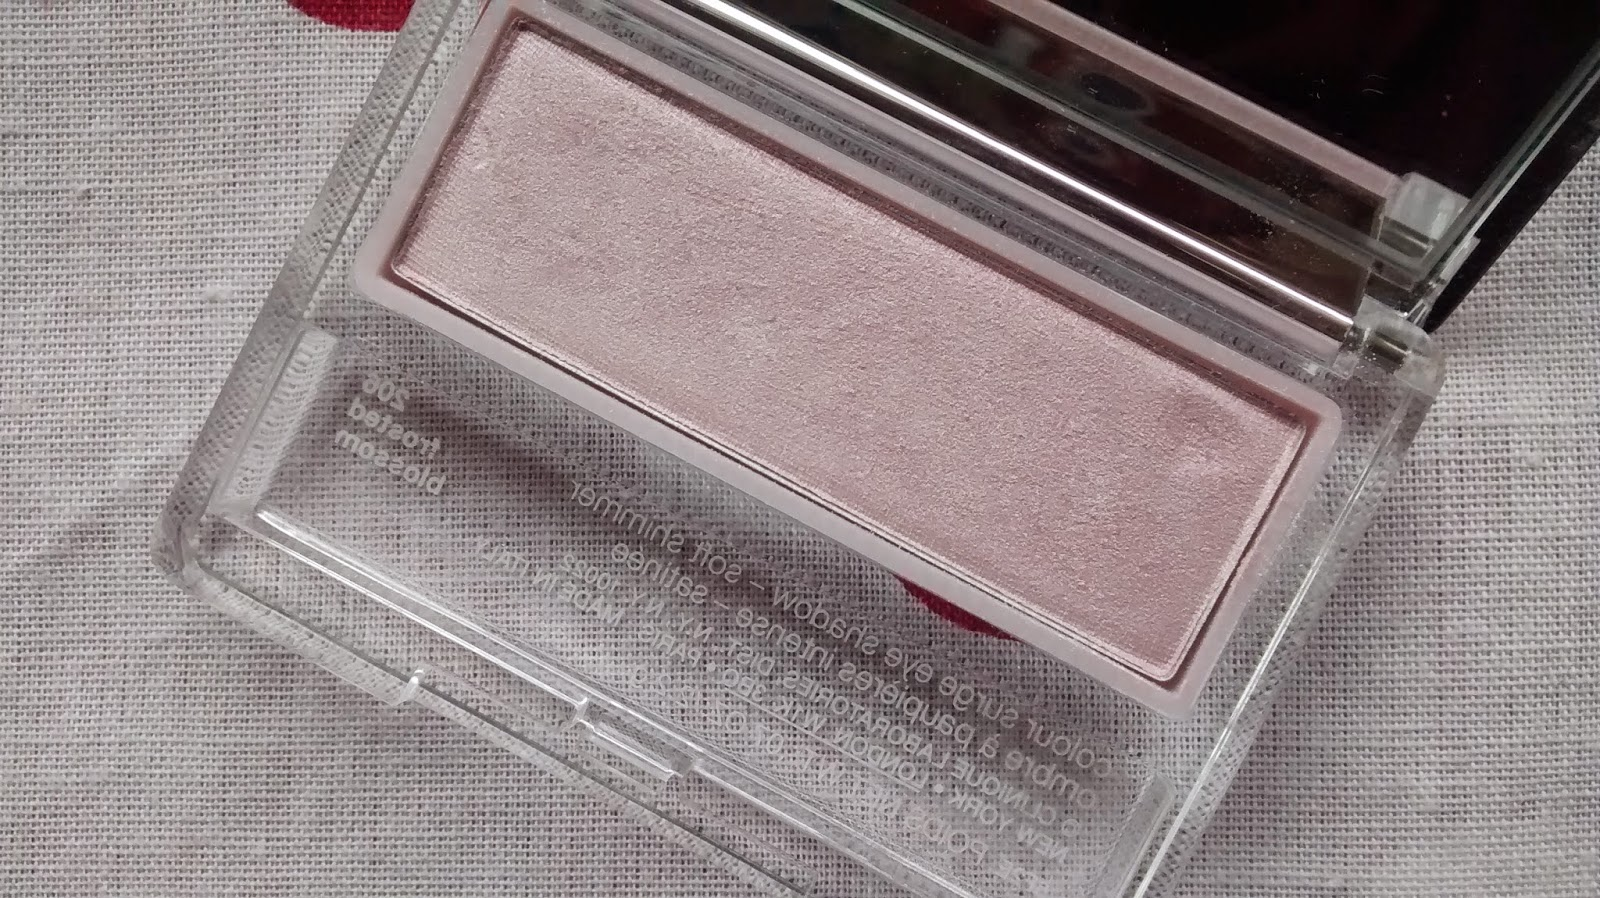 Clinique Frosted Blossom Eyeshadow